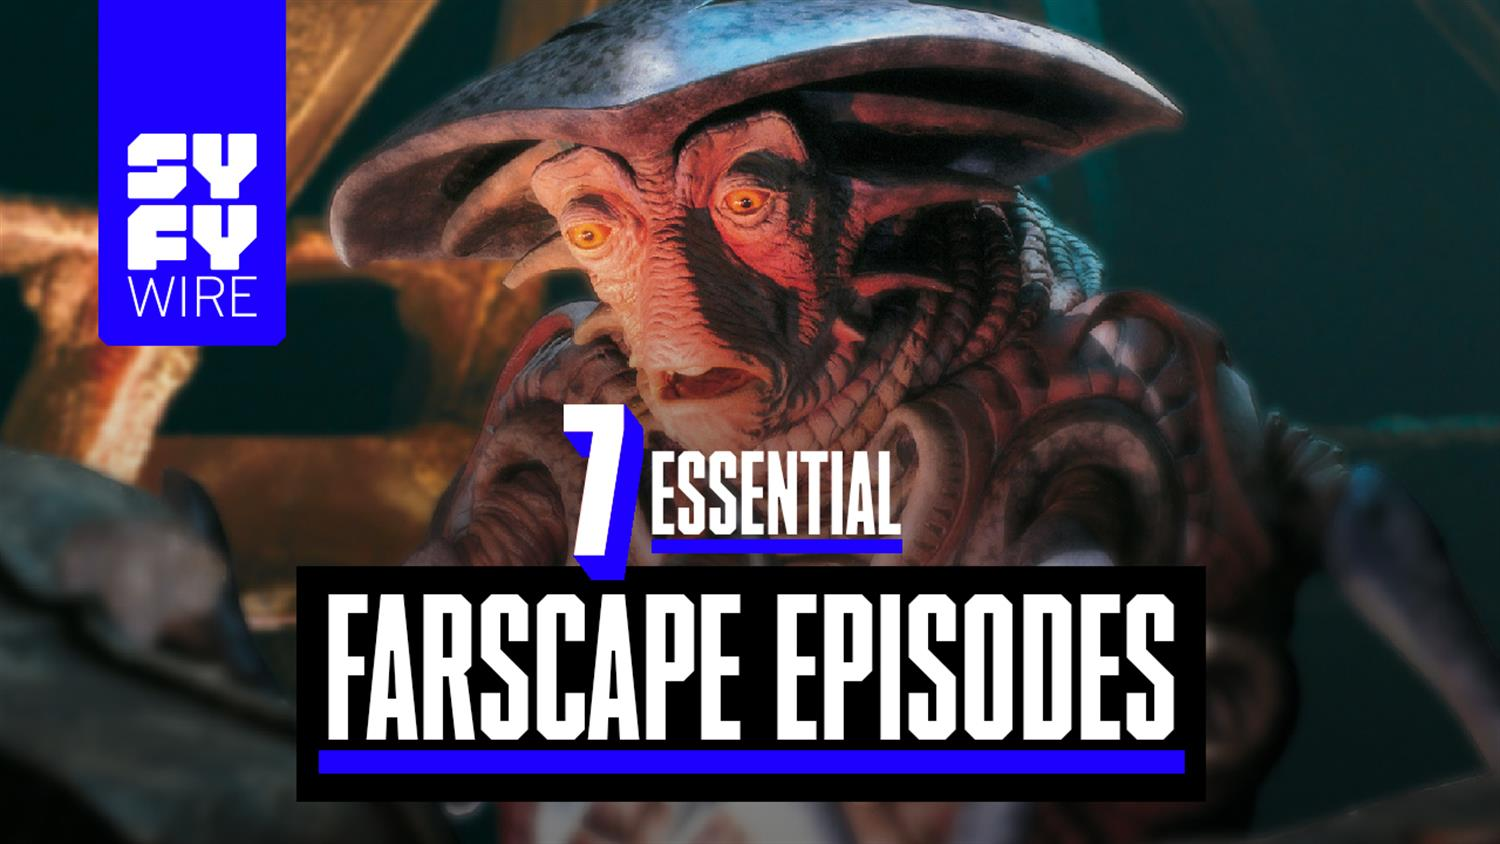 7 Essential Farscape Episodes